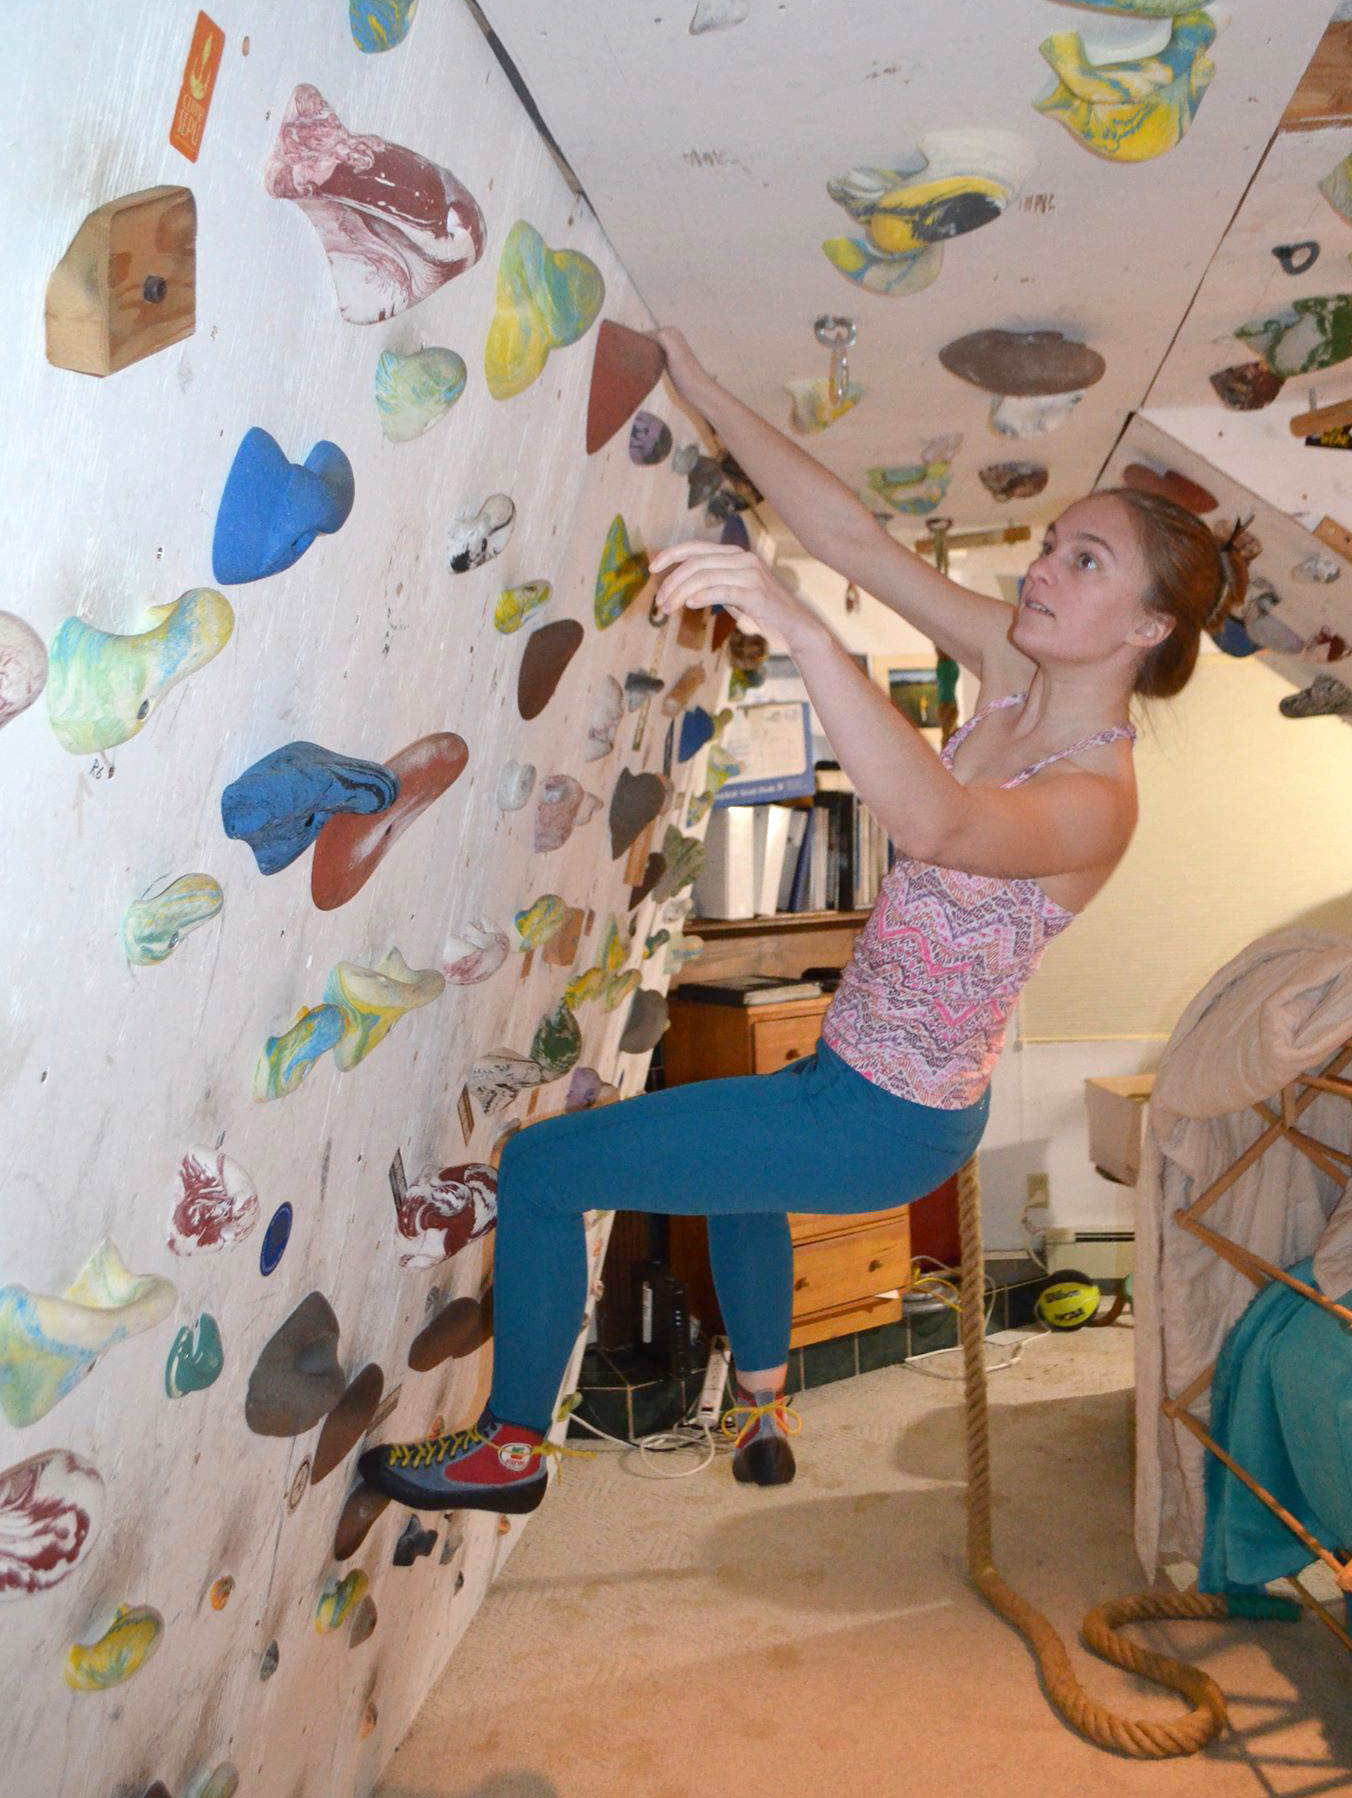 Zoe Burns sending Laundry (V2) on her home wall in Basalt, Colorado. Scientists are encouraging climbers to refrain from climbing popular outdoor routes because the coronavirus can remain infectious on a variety of surfaces, including rock, for significant periods of time. [Photo] Cam Burns